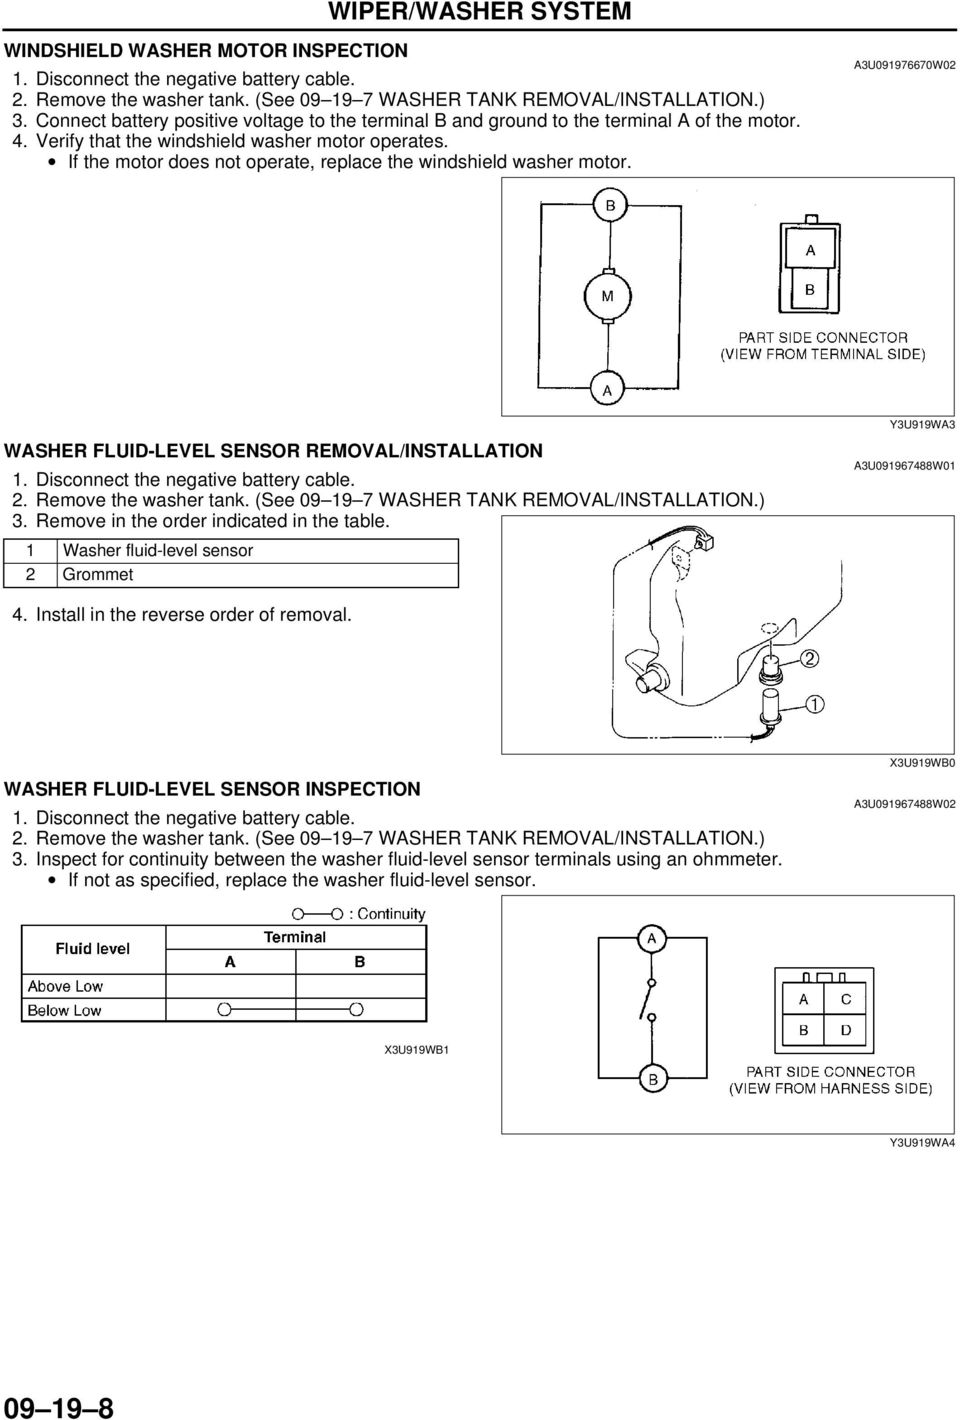 Nissan Sentra Service Manual: Front wiper does not operate